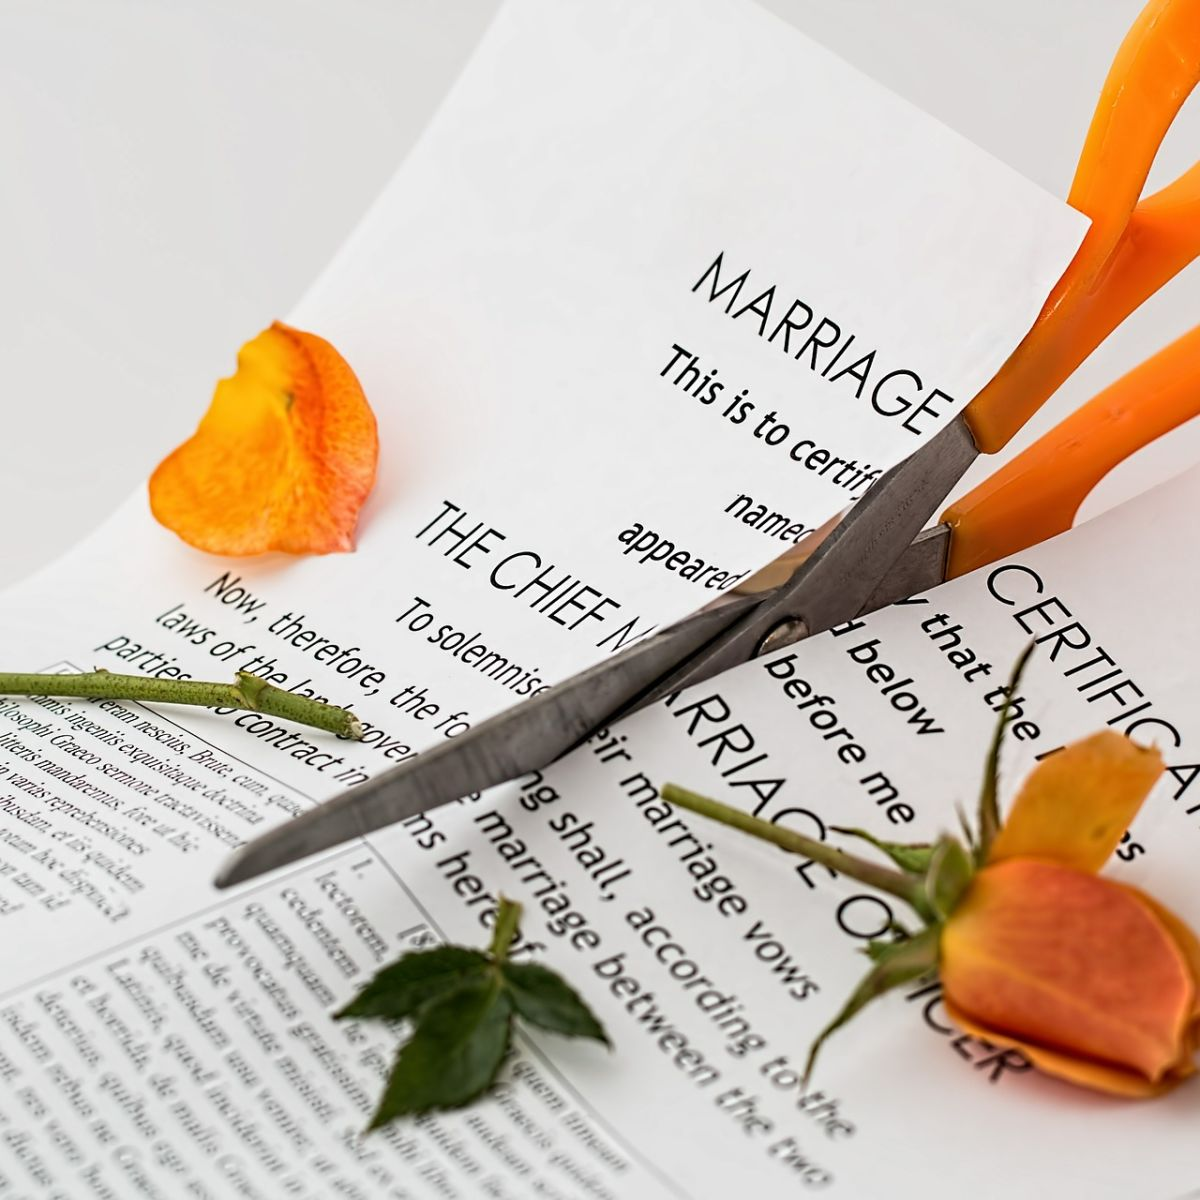 Divorce: Marriage contract cut with orange scissors, rose